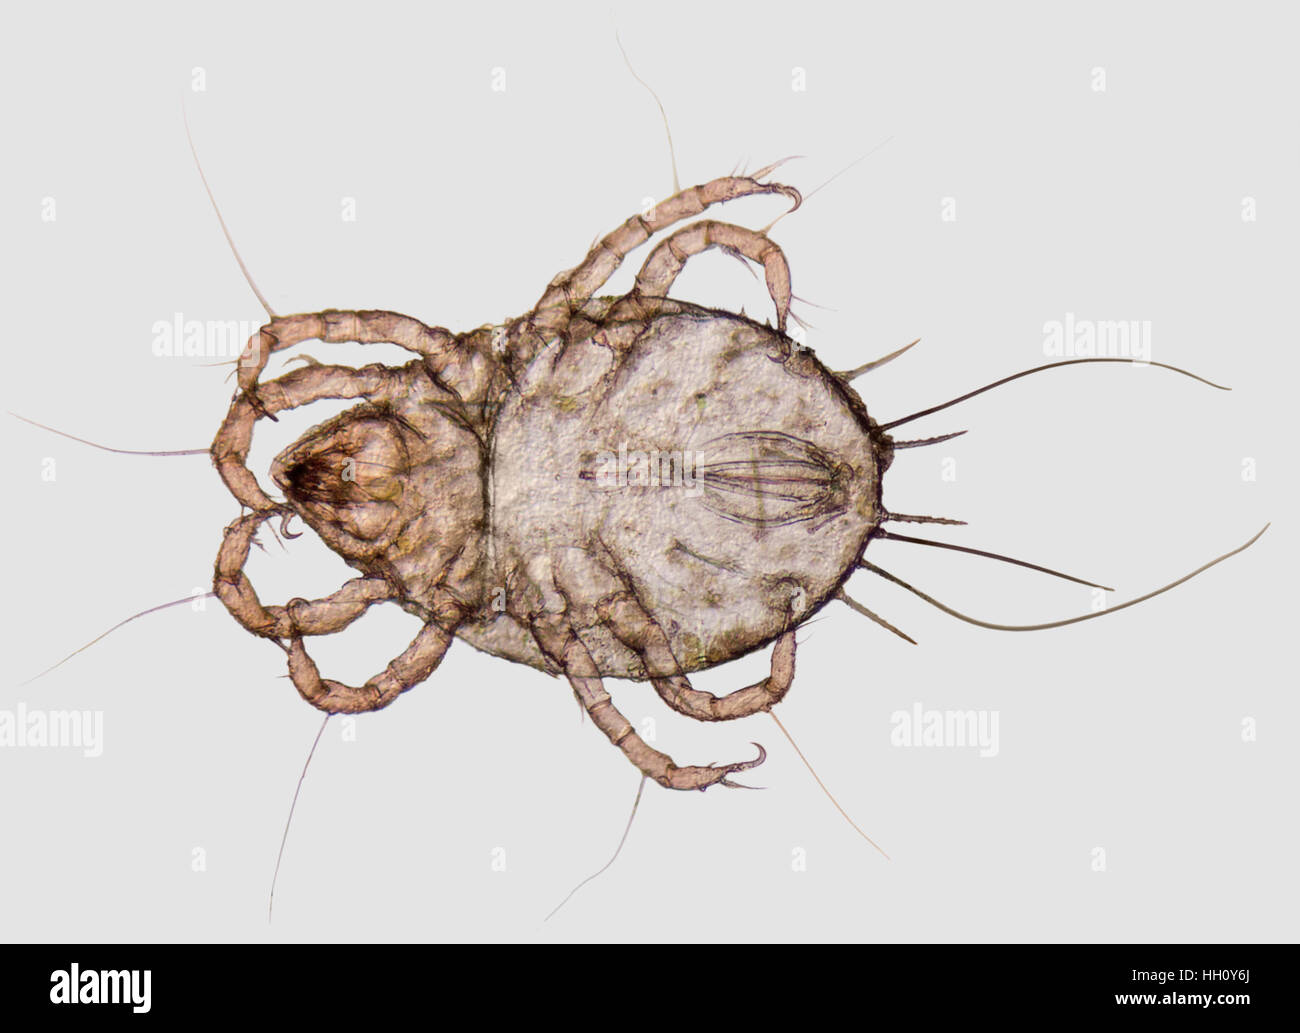 microscopic shot showing a house dust mite - Stock Image